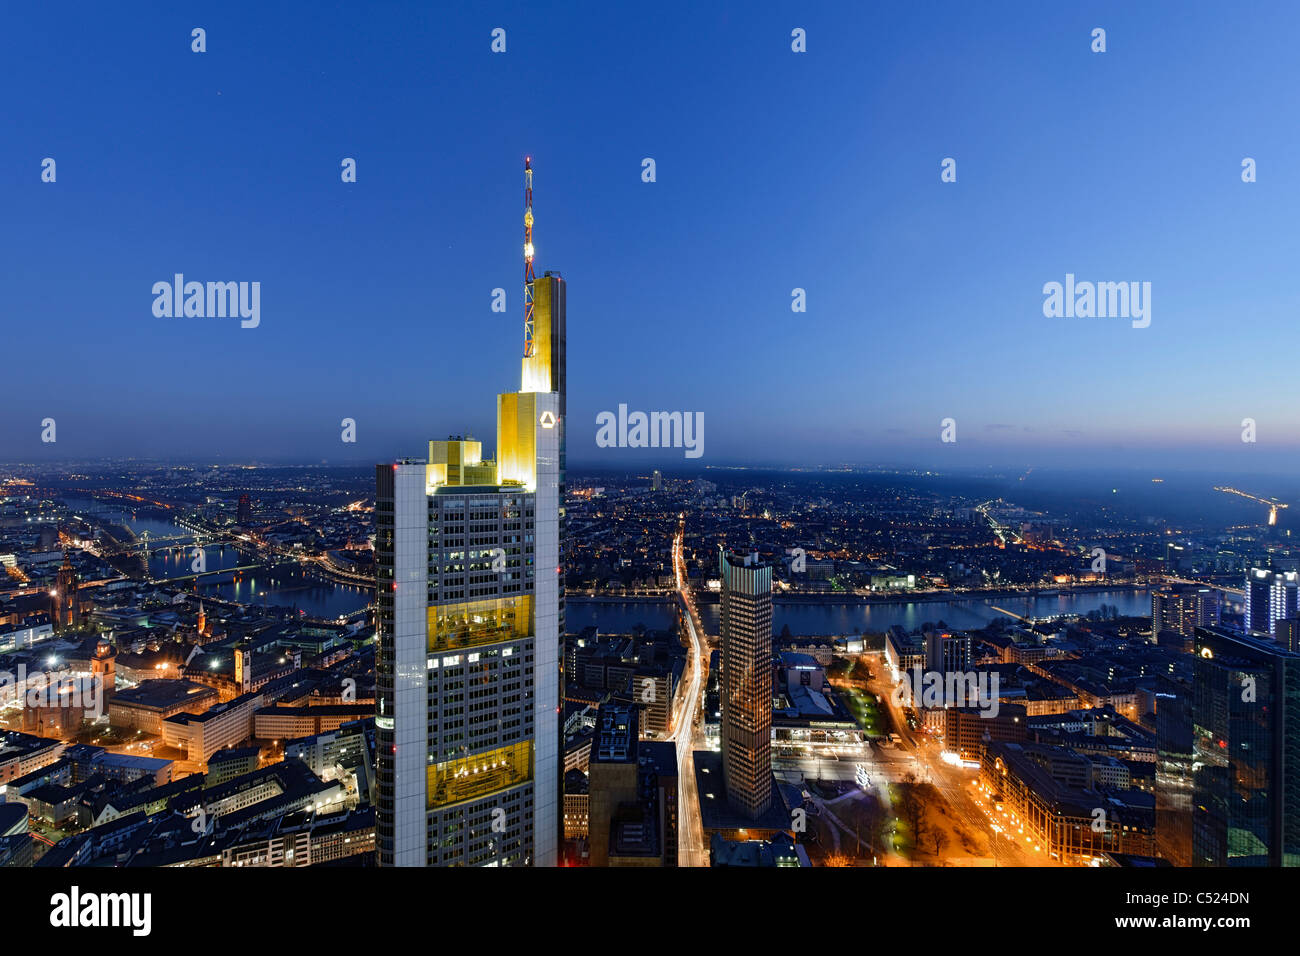 Panorama at dusk, facing south, Sachsenhausen, Main Tower, Frankfurt am Main, Hesse, Germany, Europe - Stock Image